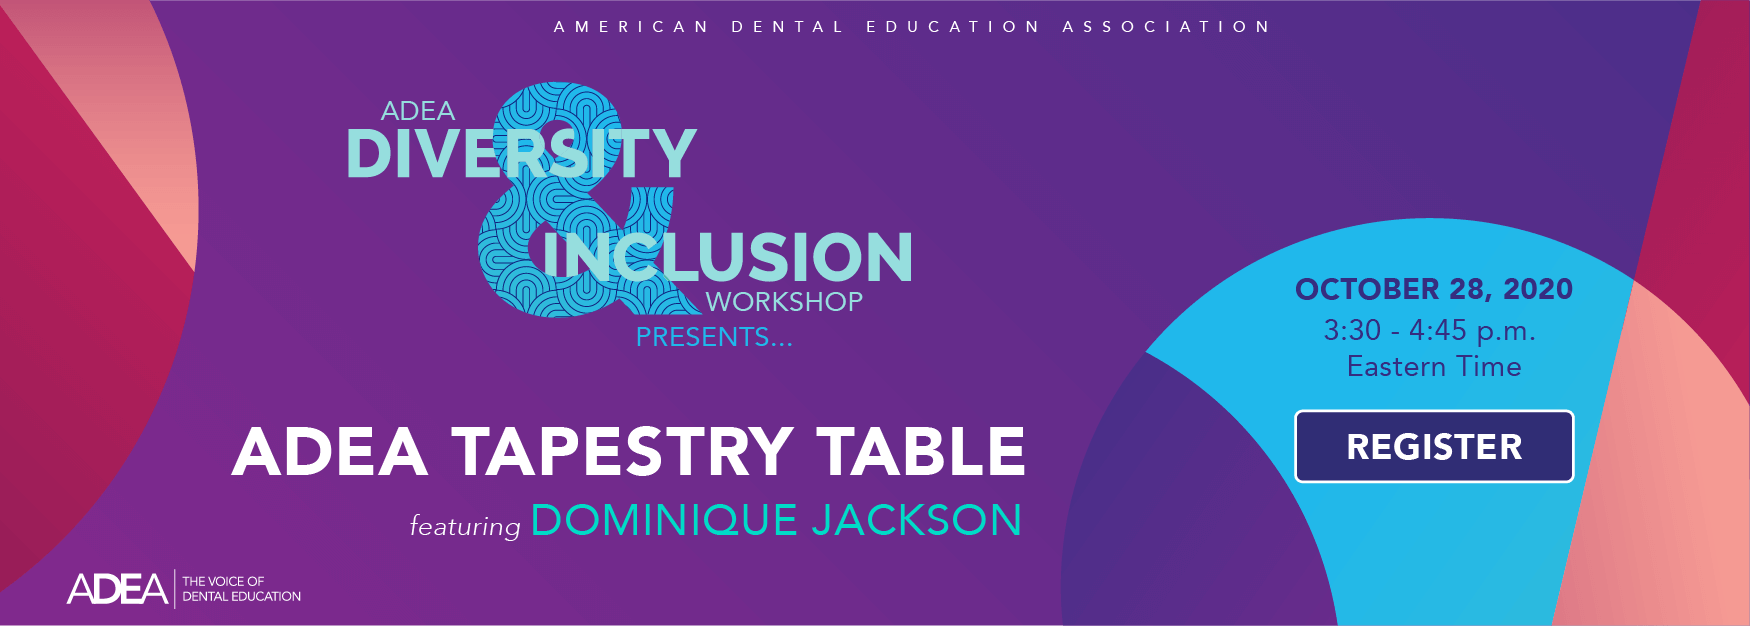 ADEA Diversity & Inclusion Workshop | October 28, 2020 | 3:30 - 4:45 p.m. ET